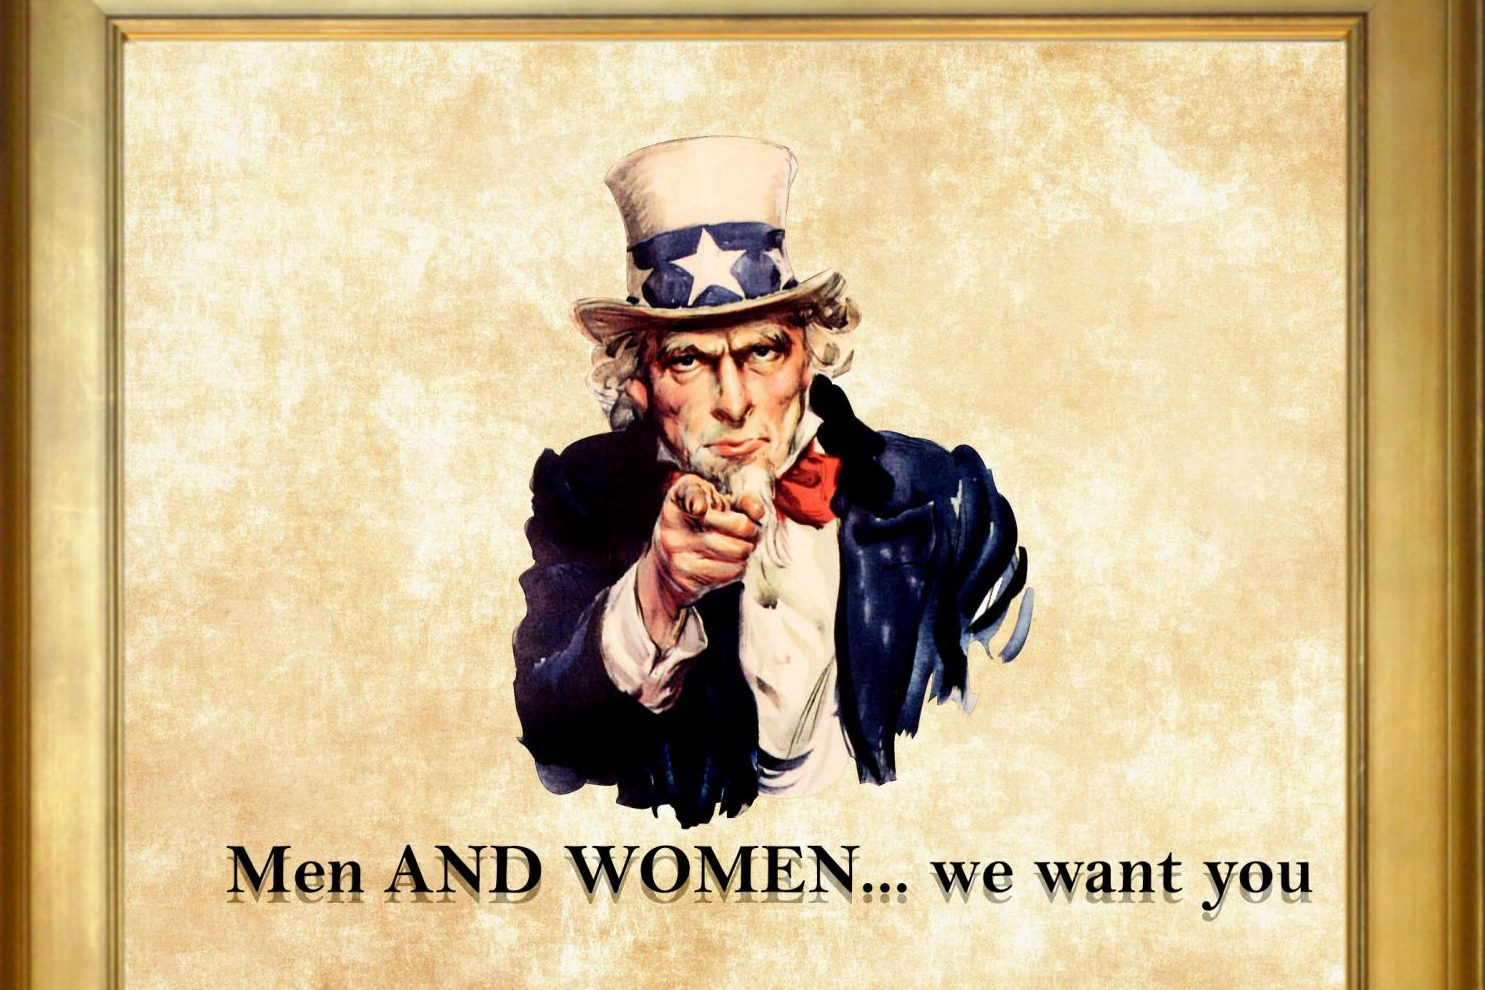 Uncle Sam should want men and women when trying to recruit for the military.